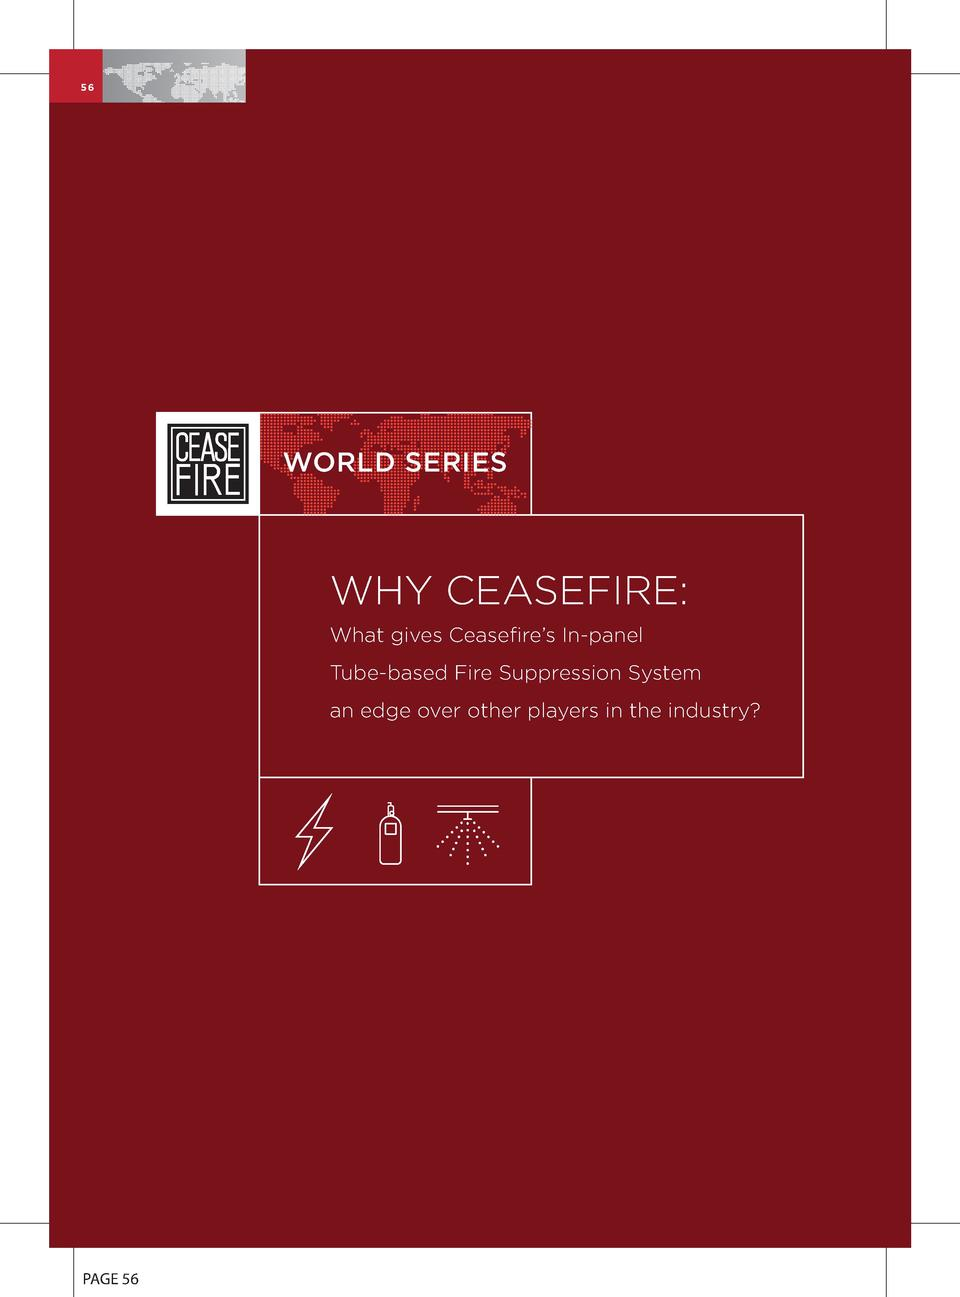 56  WORLD SERIES  WHY CEASEFIRE  What gives Ceasefire   s In-panel Tube-based Fire Suppression System an edge over other p...